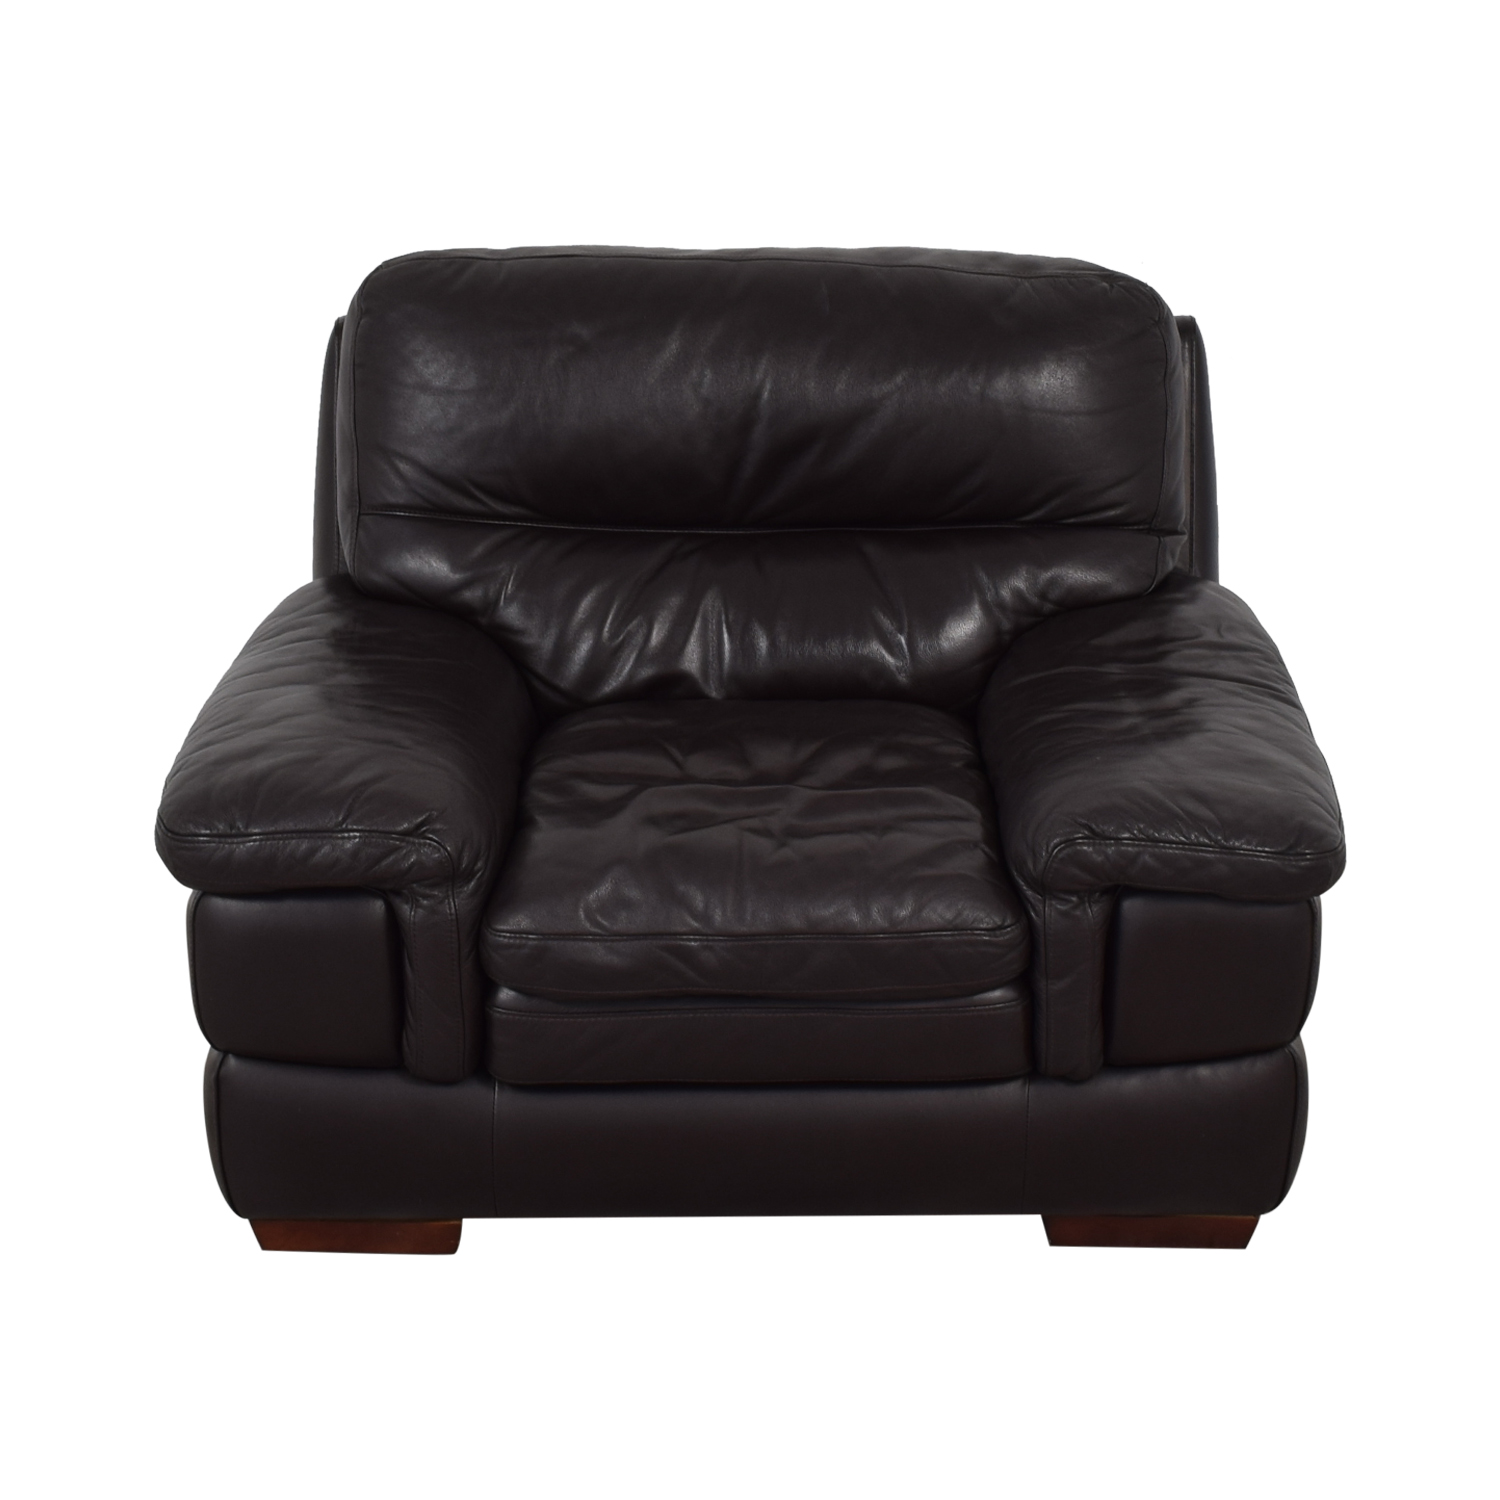 Bob's Discount Furniture Brown Leather Accent Chair Bob's Discount Furniture